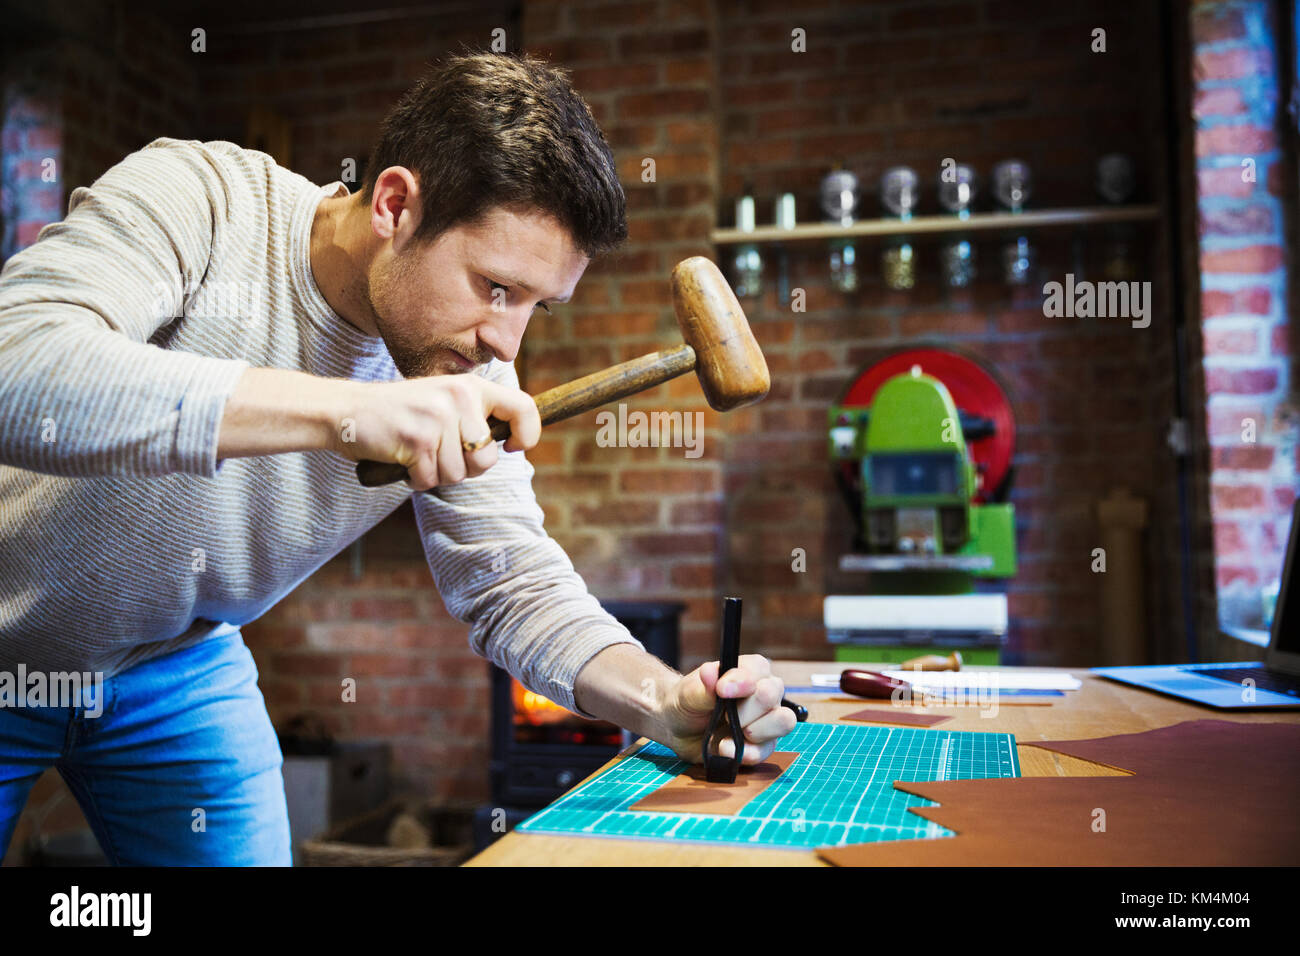 A craftsman using a hammer and pincers to hold and imprint a stamp on a piece of brown leather. - Stock Image